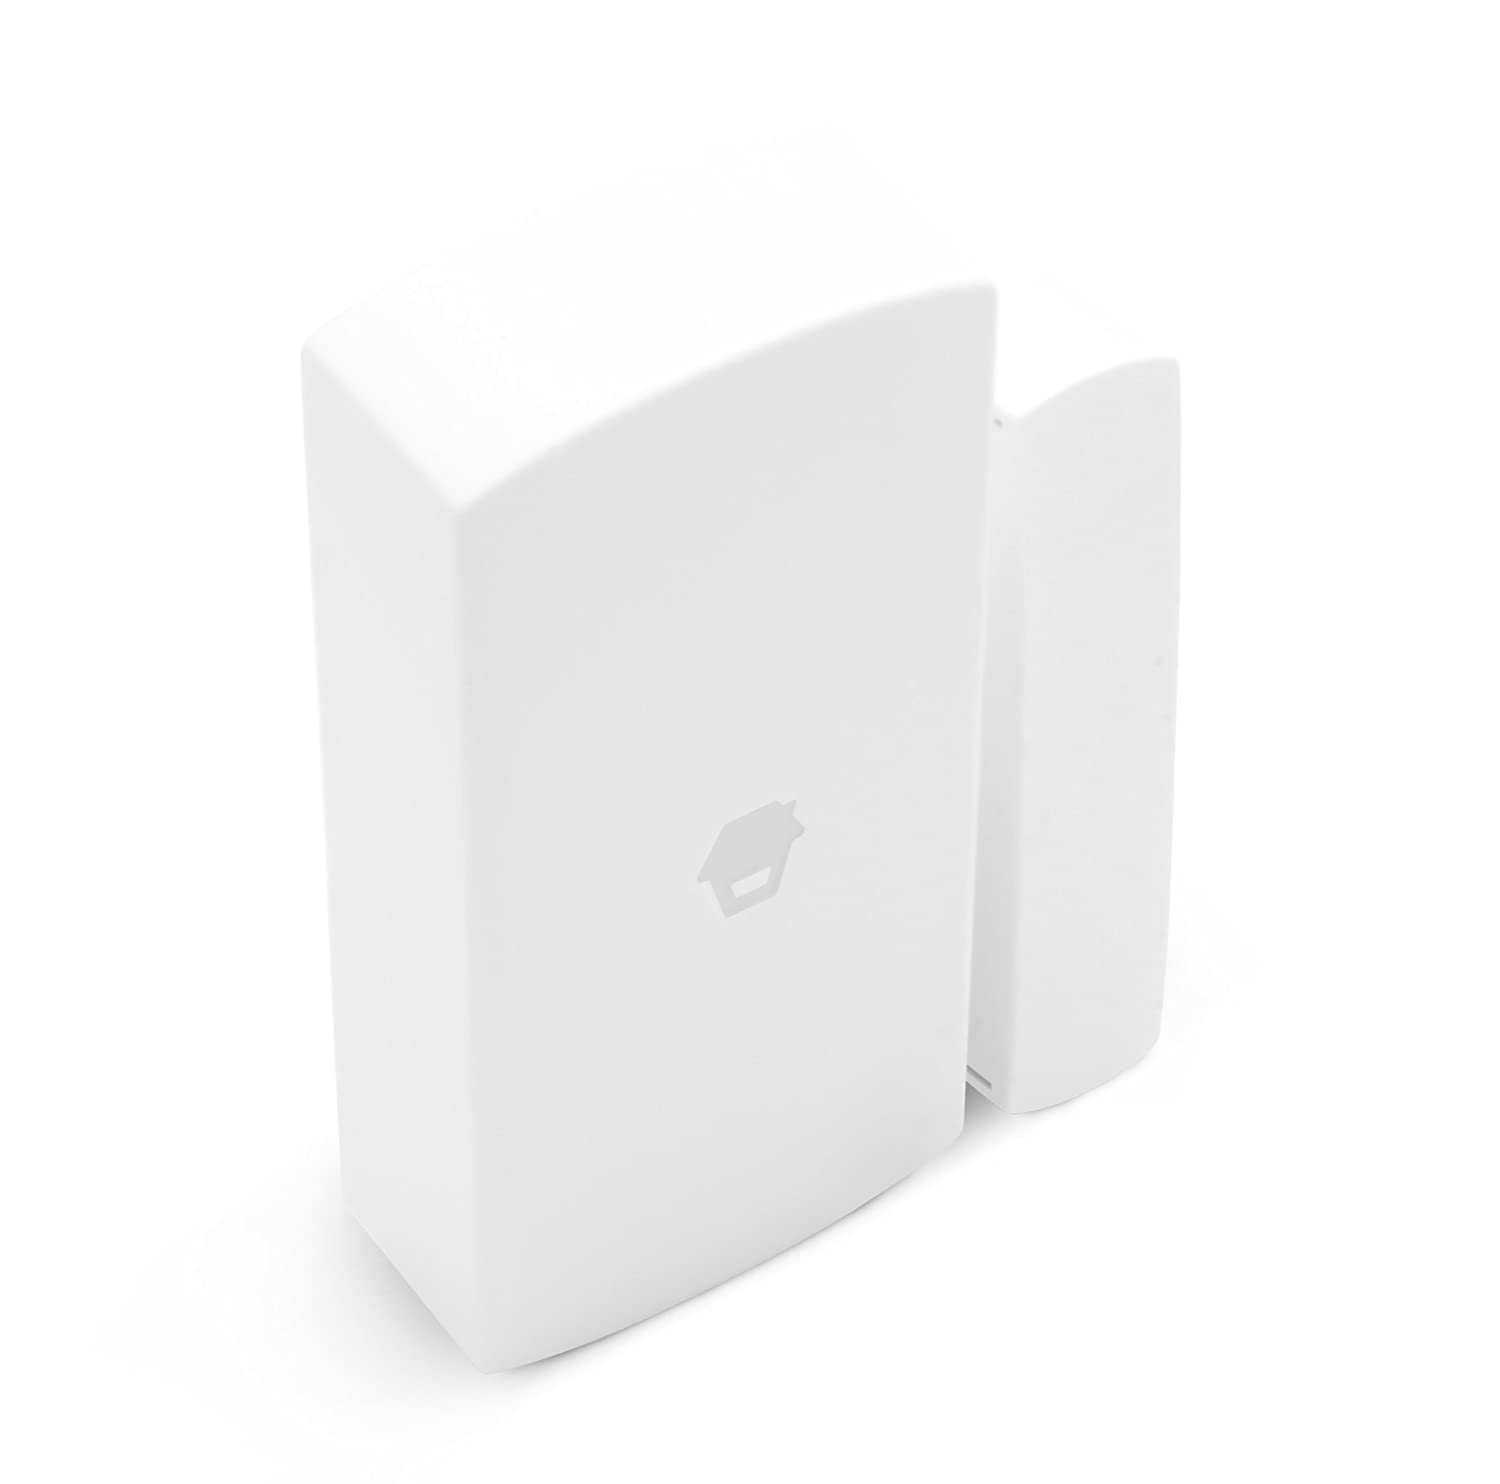 CHUANGO DWC-102 Wireless Door/Window Contact